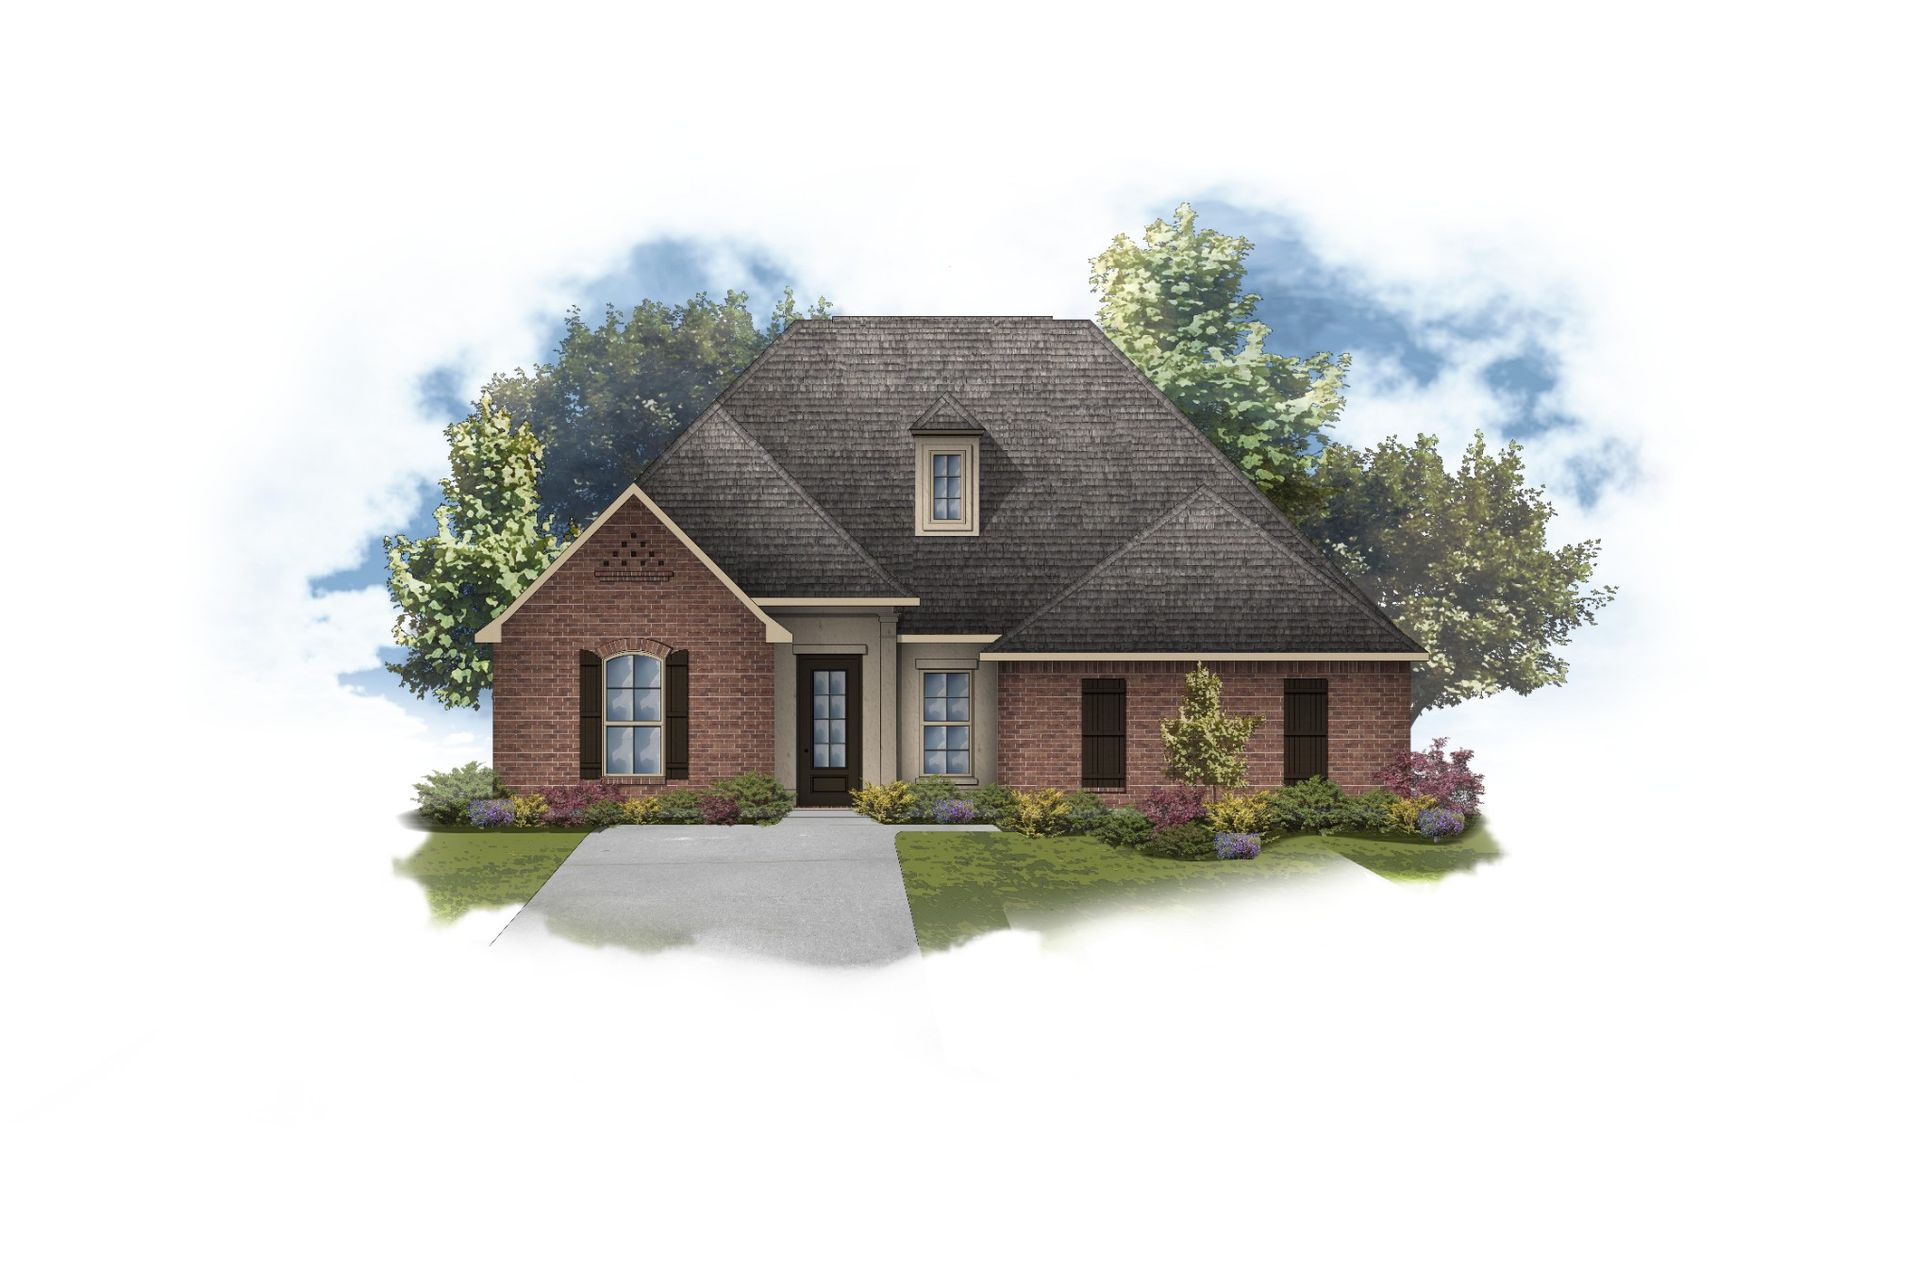 Harmand II A - The Preserve at Gray's Creek - Floor Plan in Community